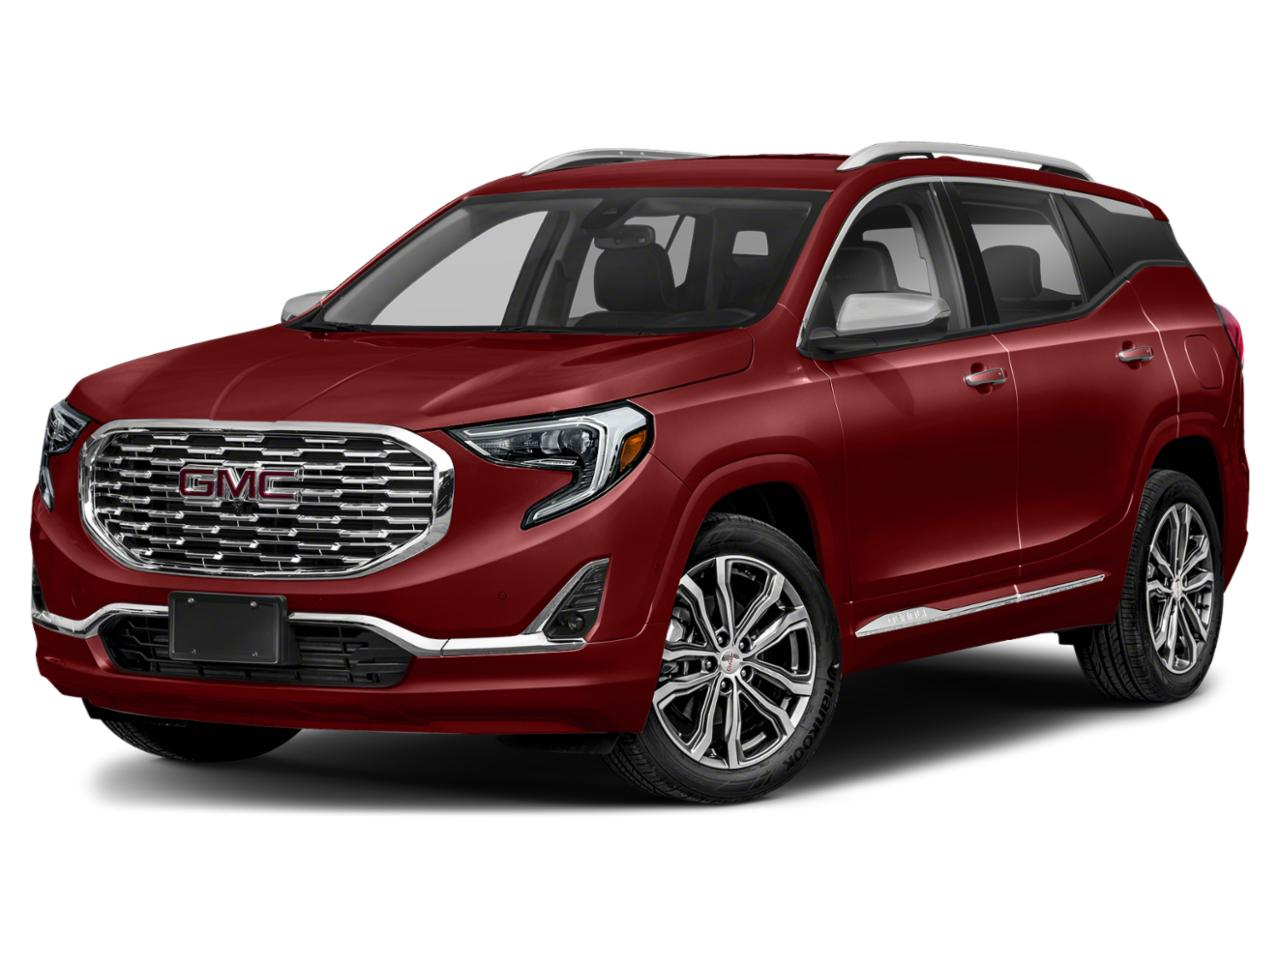 2020 GMC Terrain Vehicle Photo in Ocala, FL 34474